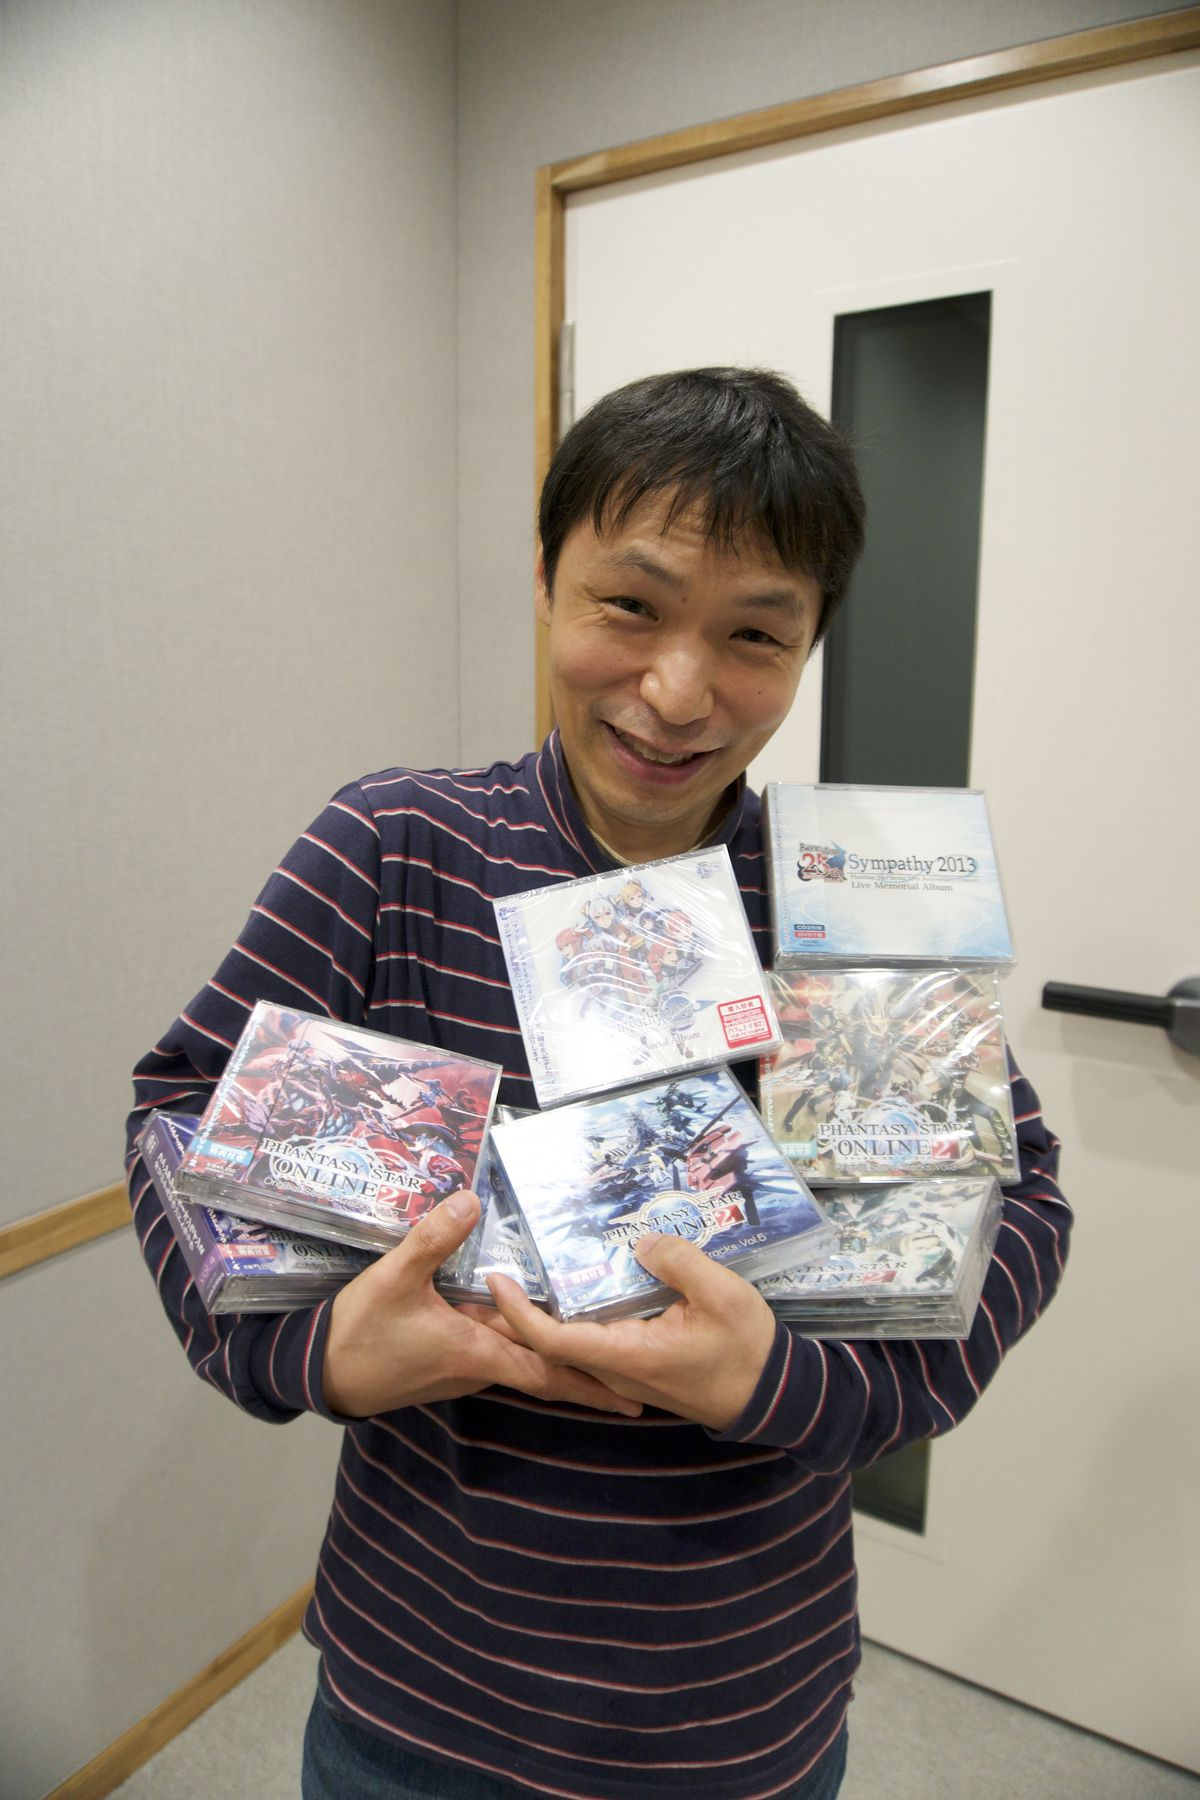 Hideaki Kobayashi carries a large pile of CD cases